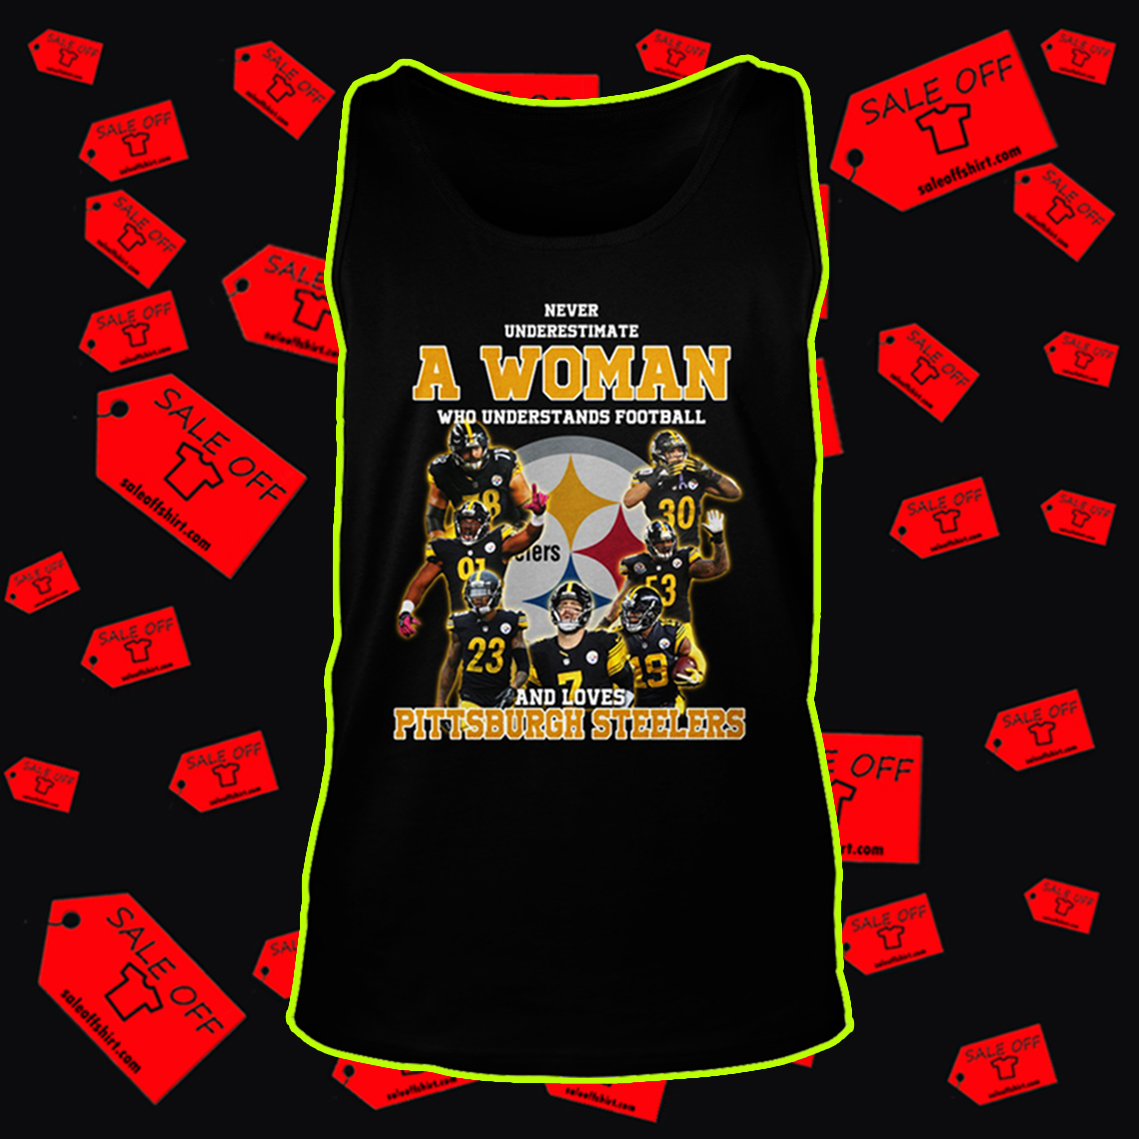 ® (Cool) Never underestimate a woman who understands football and loves Pittsburgh Steelers shirt